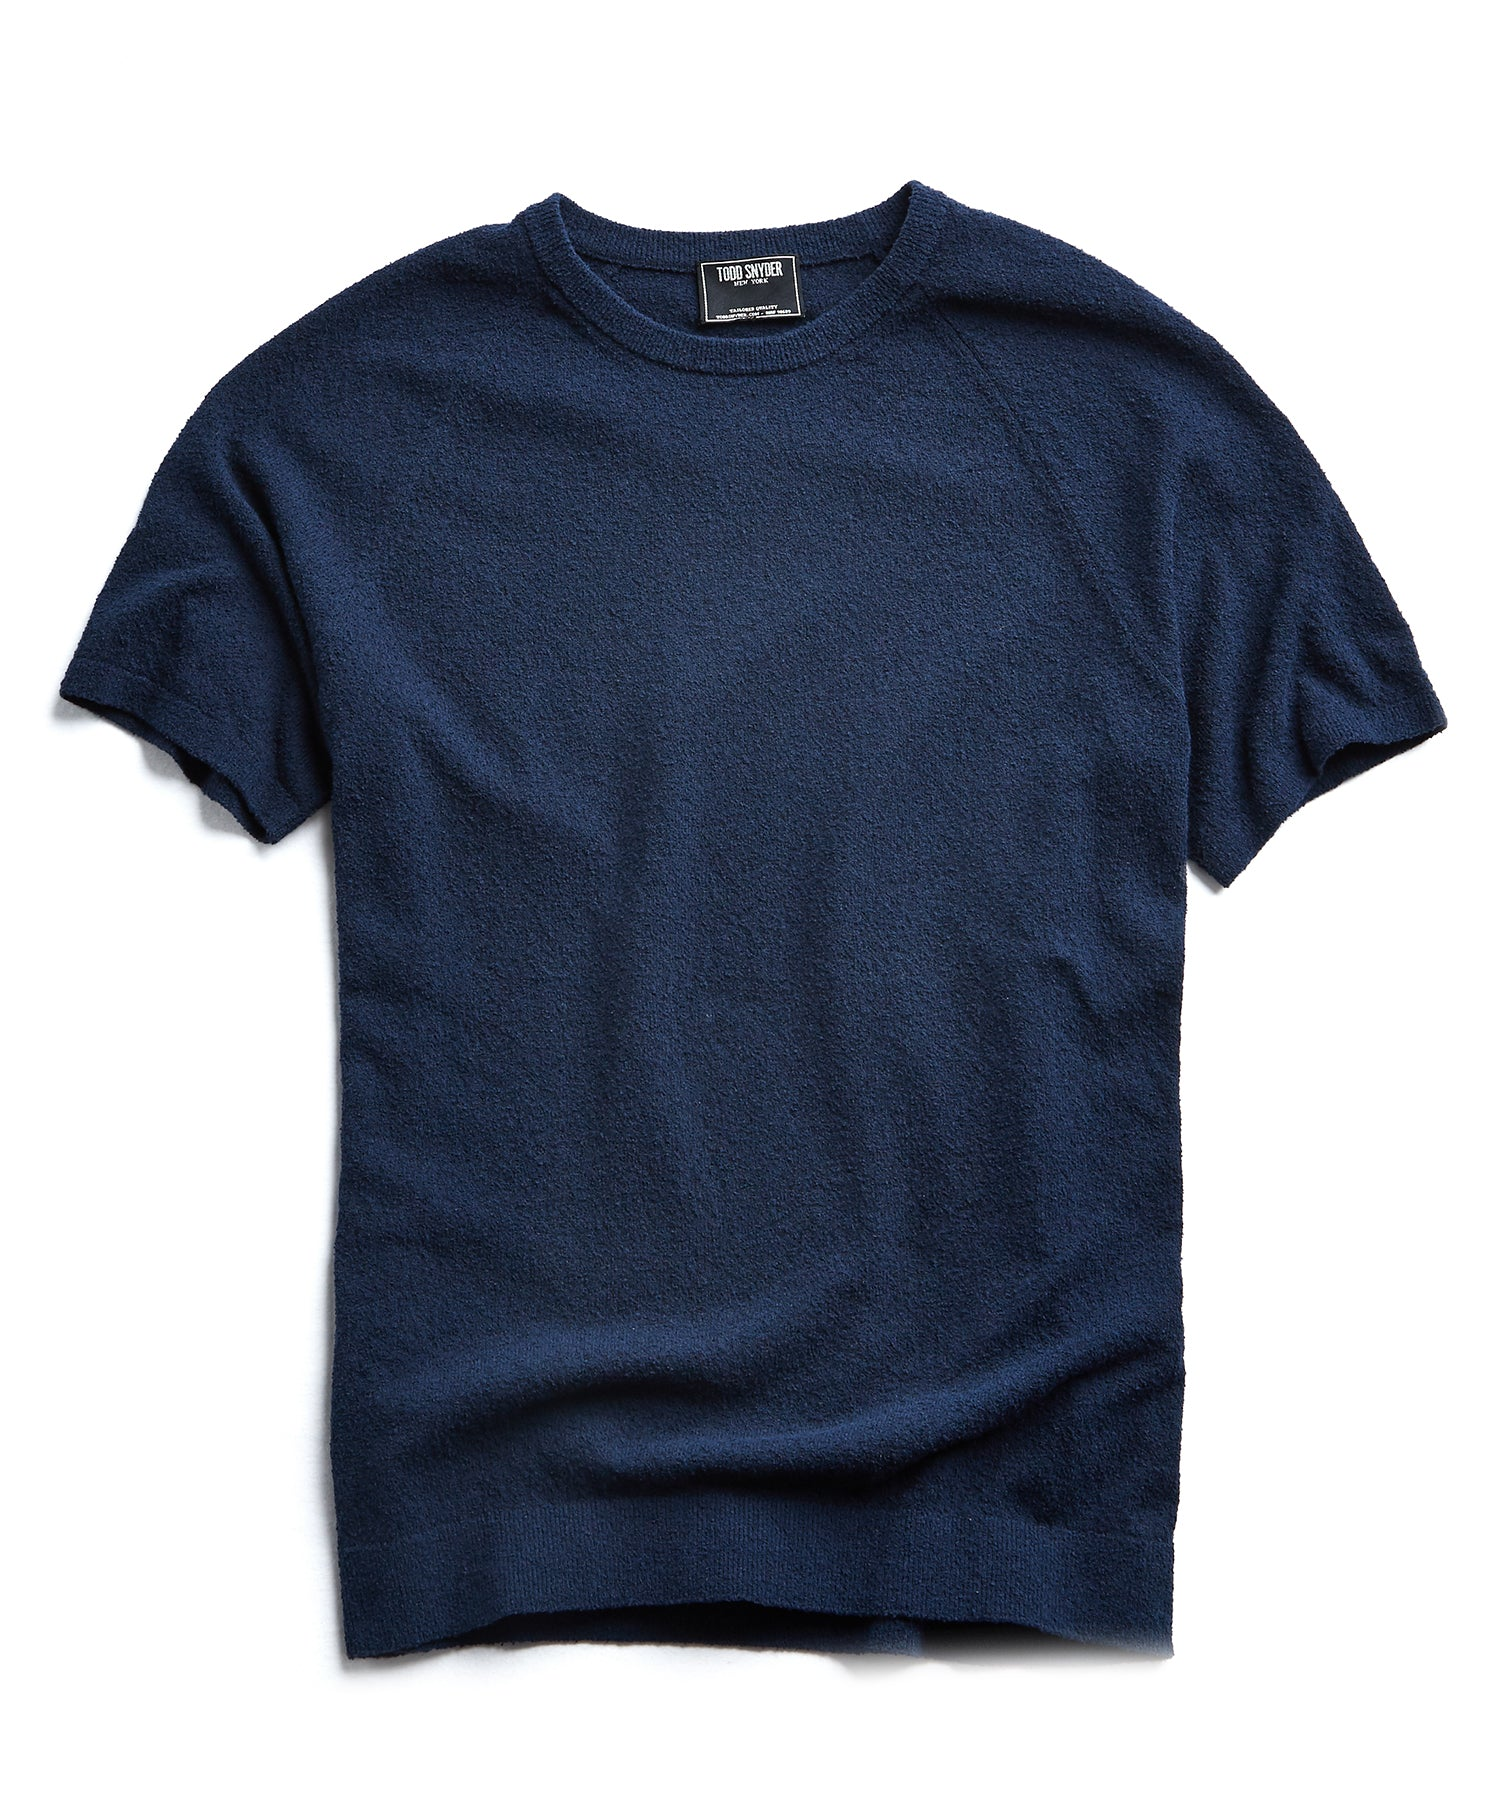 Boucle Short Sleeve Sweater in Navy